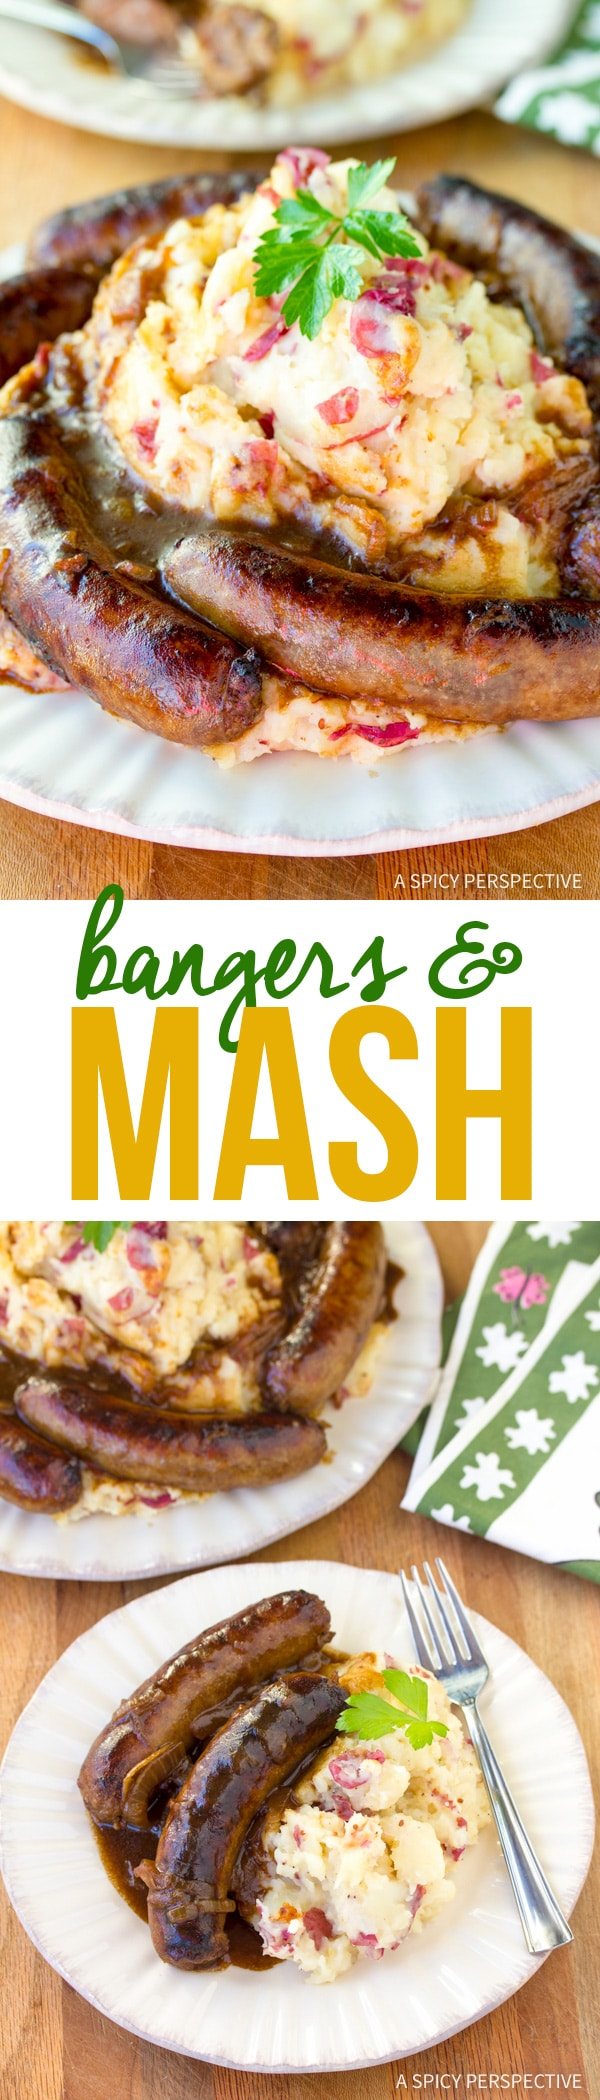 Rustic Bangers and Mash Recipe #saintpatricksday